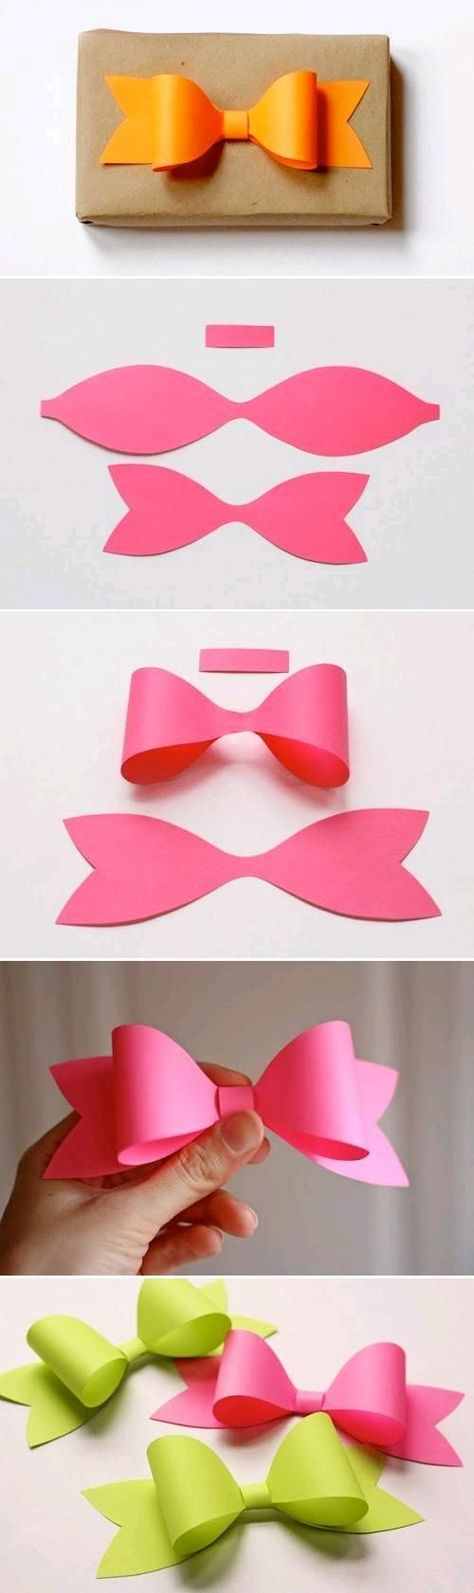 Fabric and Felt Flowers \ Bows - Felt bows, Felting and Patterns - bow template